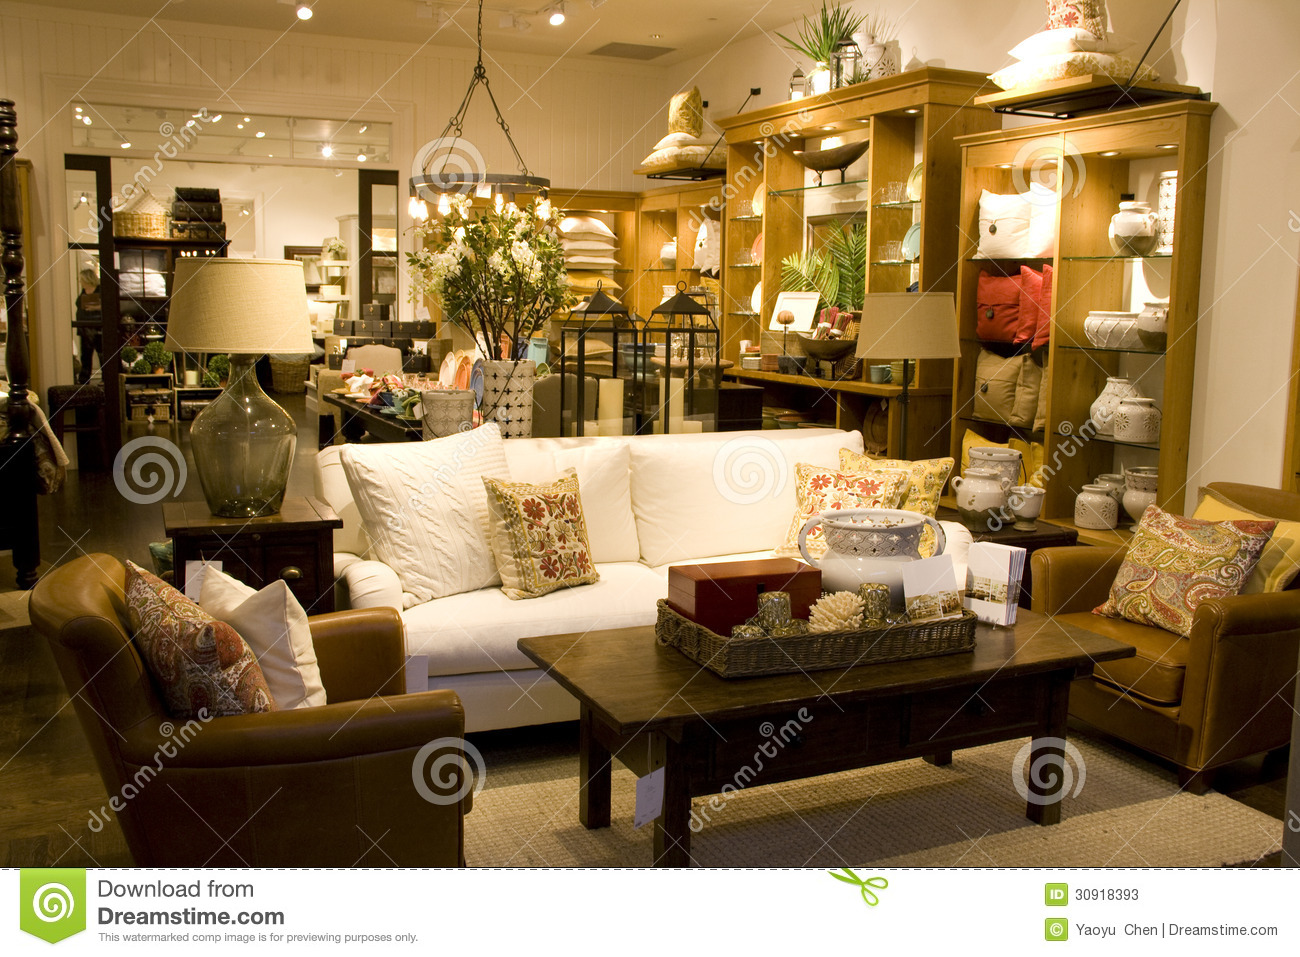 Furniture and home decor store stock image image 30918393 for Home furniture and accessories